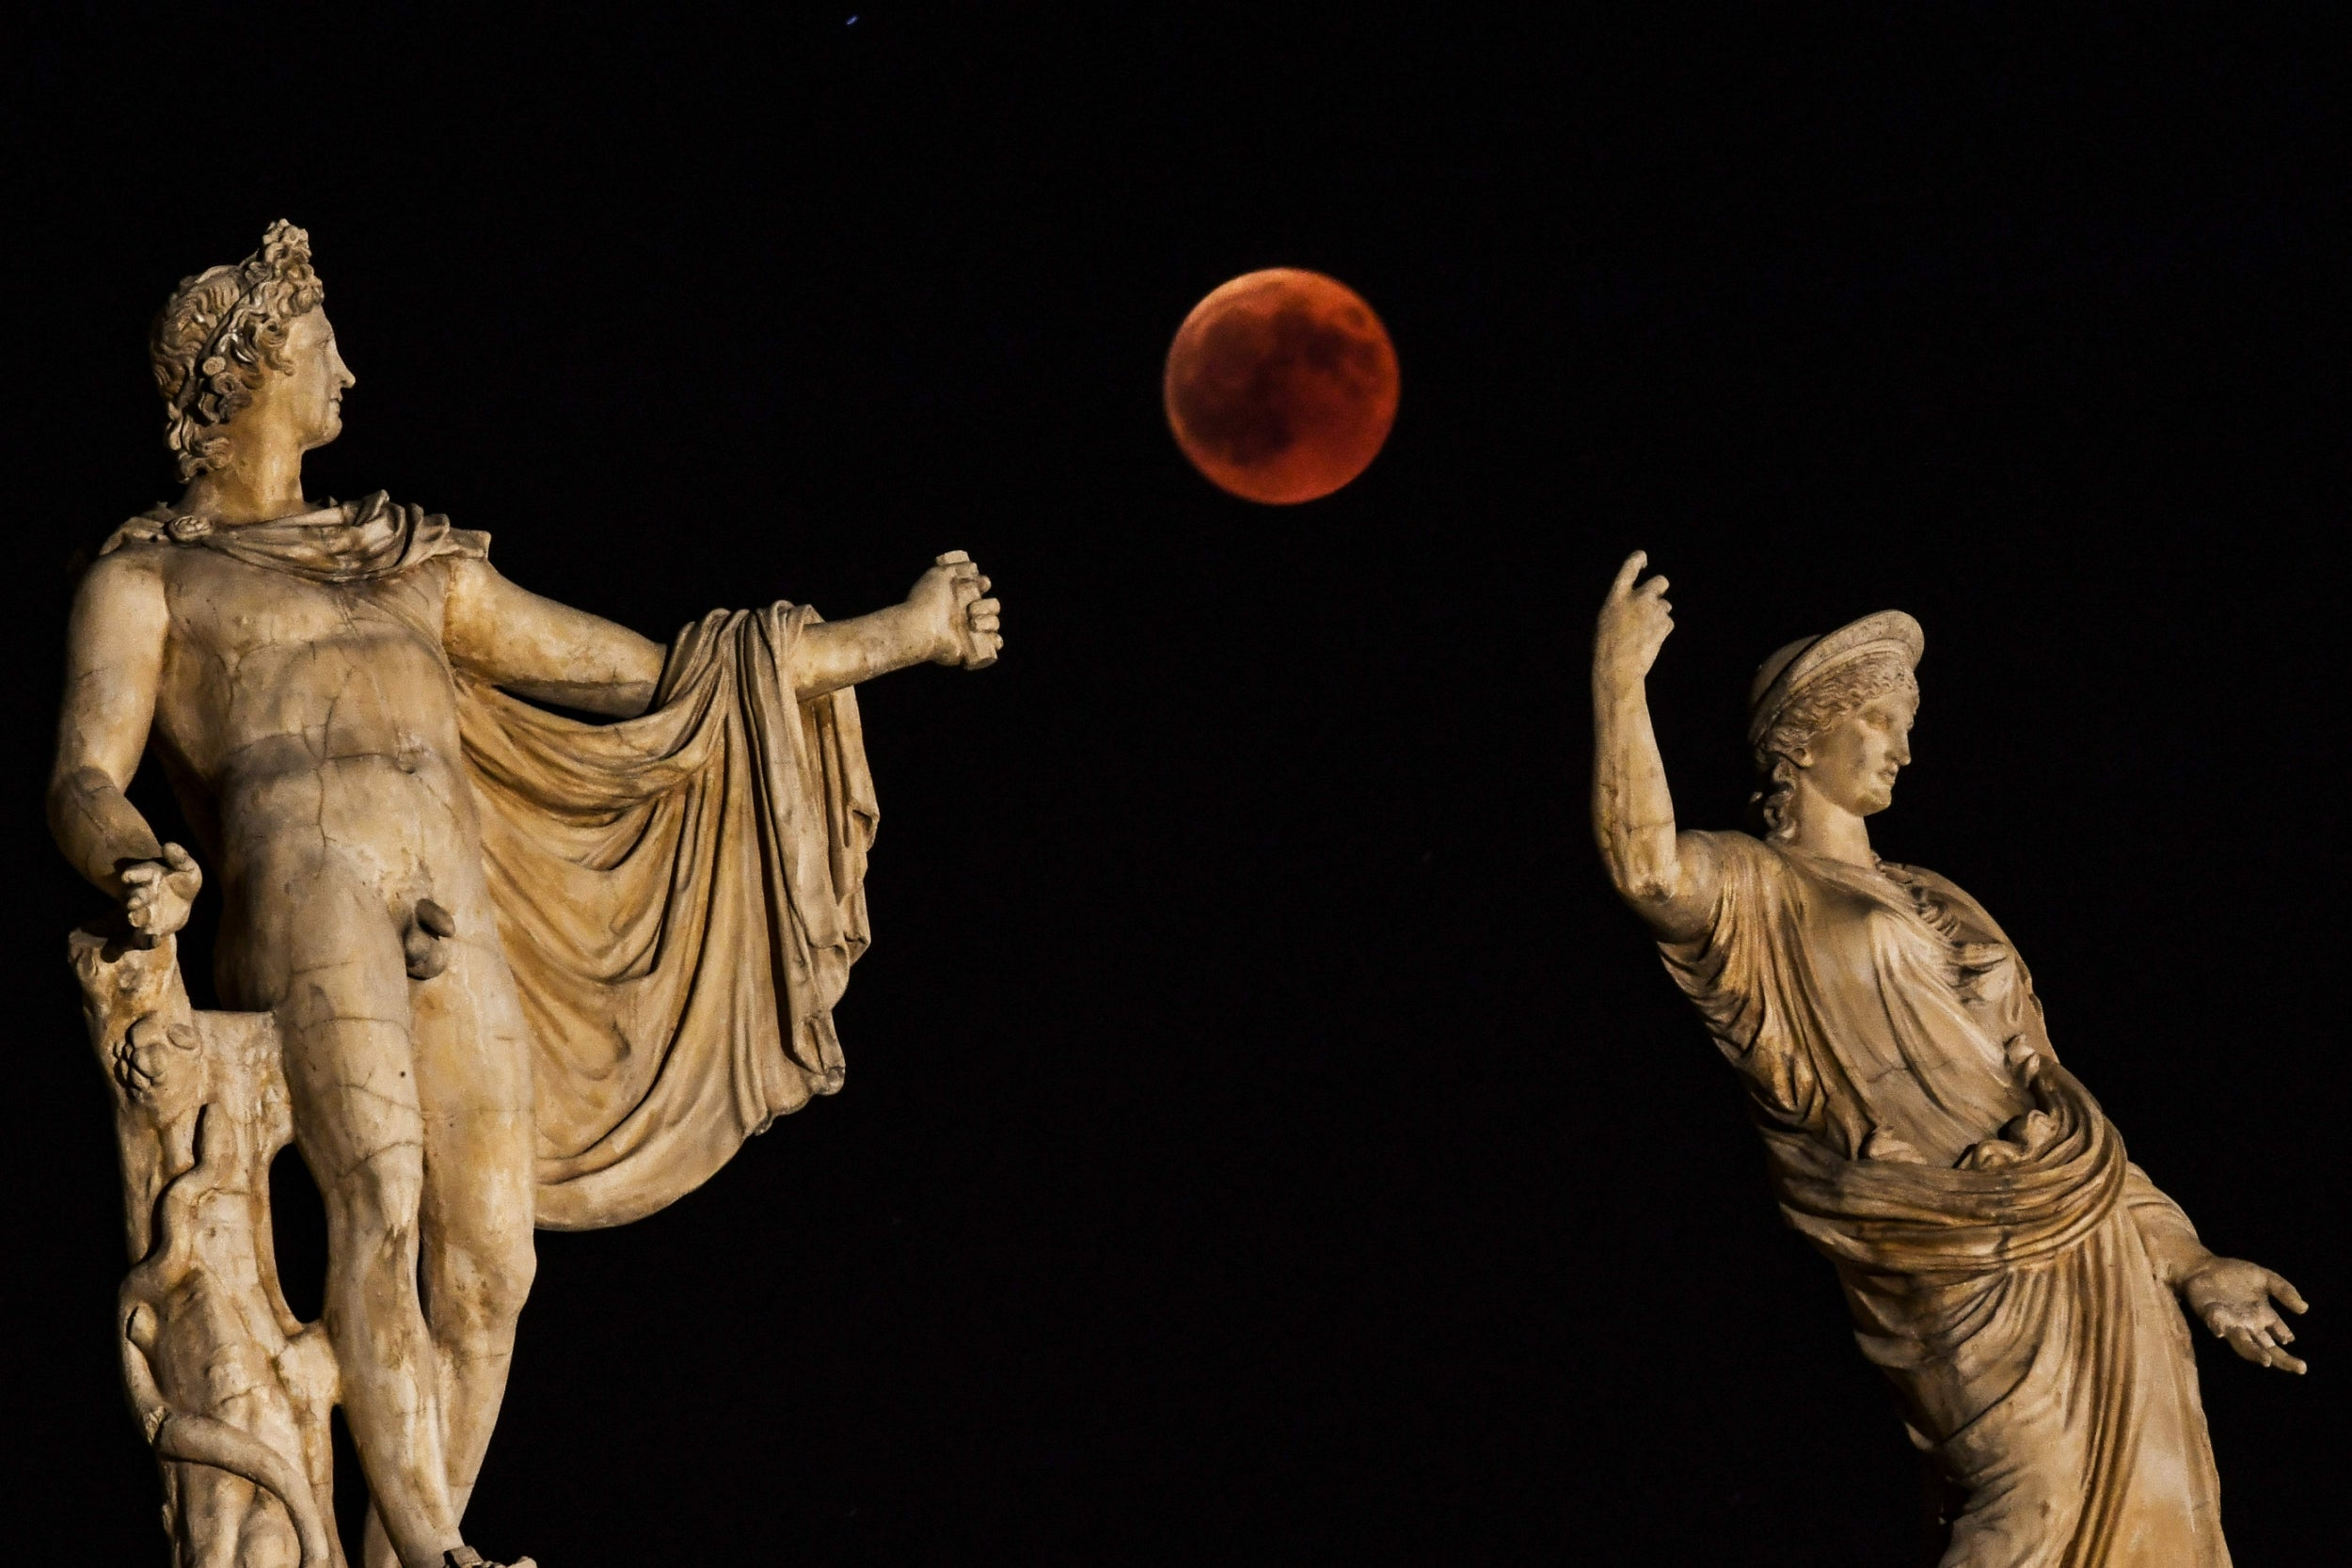 Blood moon: Lunar eclipse to light up the sky for the last time for years